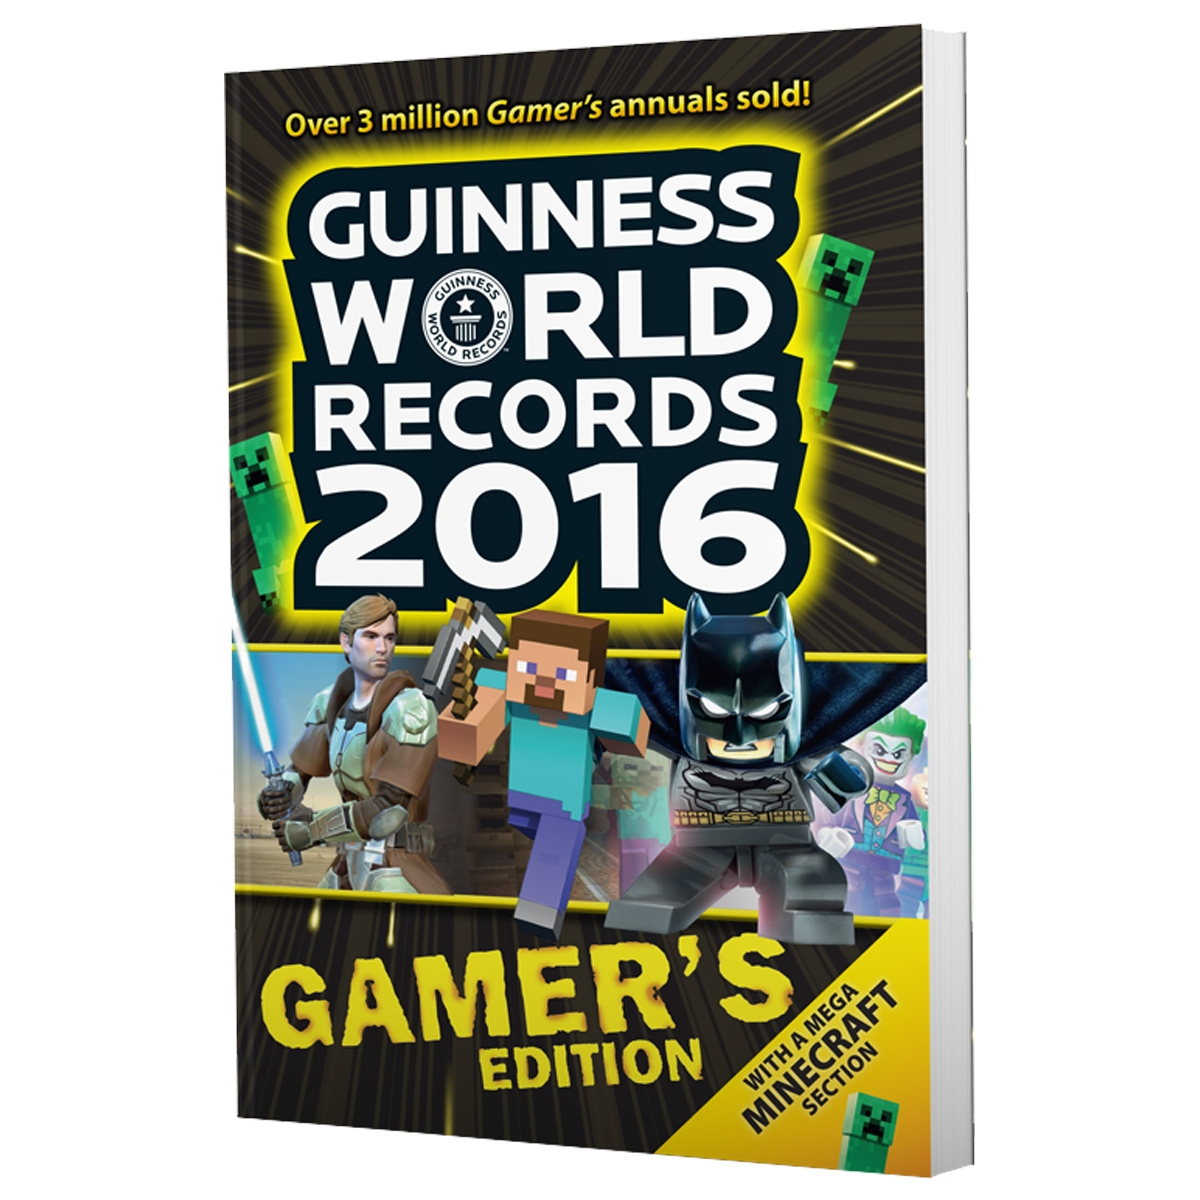 Guinness World Record | Euro Palace Casino Blog